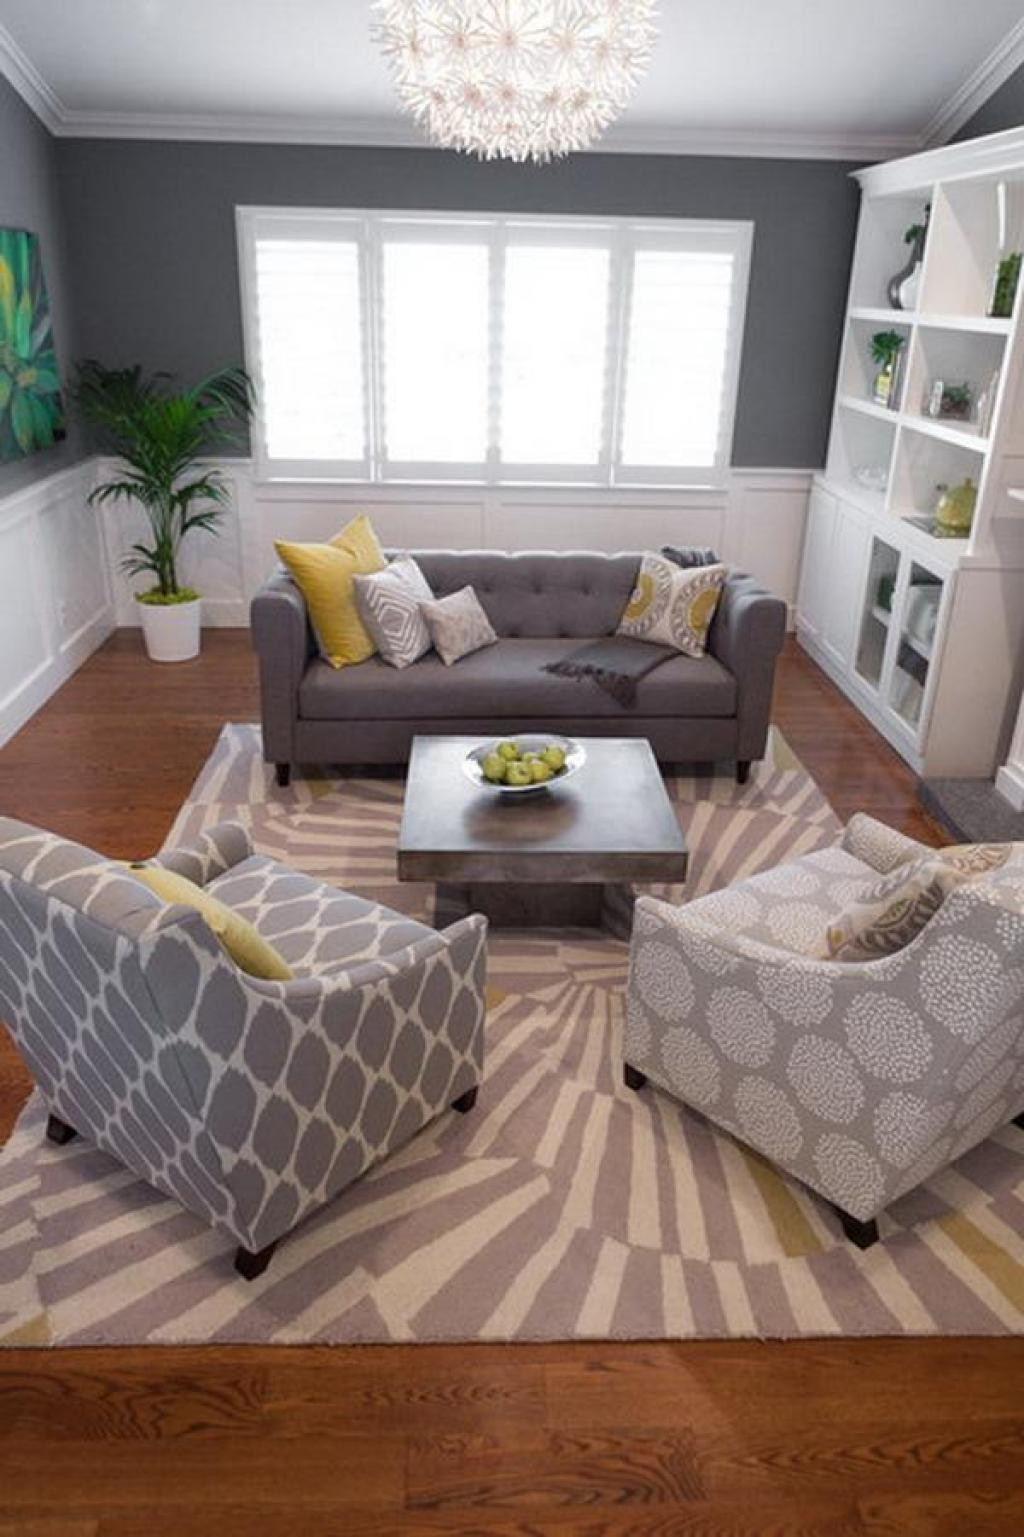 Best ideas about Living Room Rug Ideas . Save or Pin Living room rug 18 rules for right choosing Now.